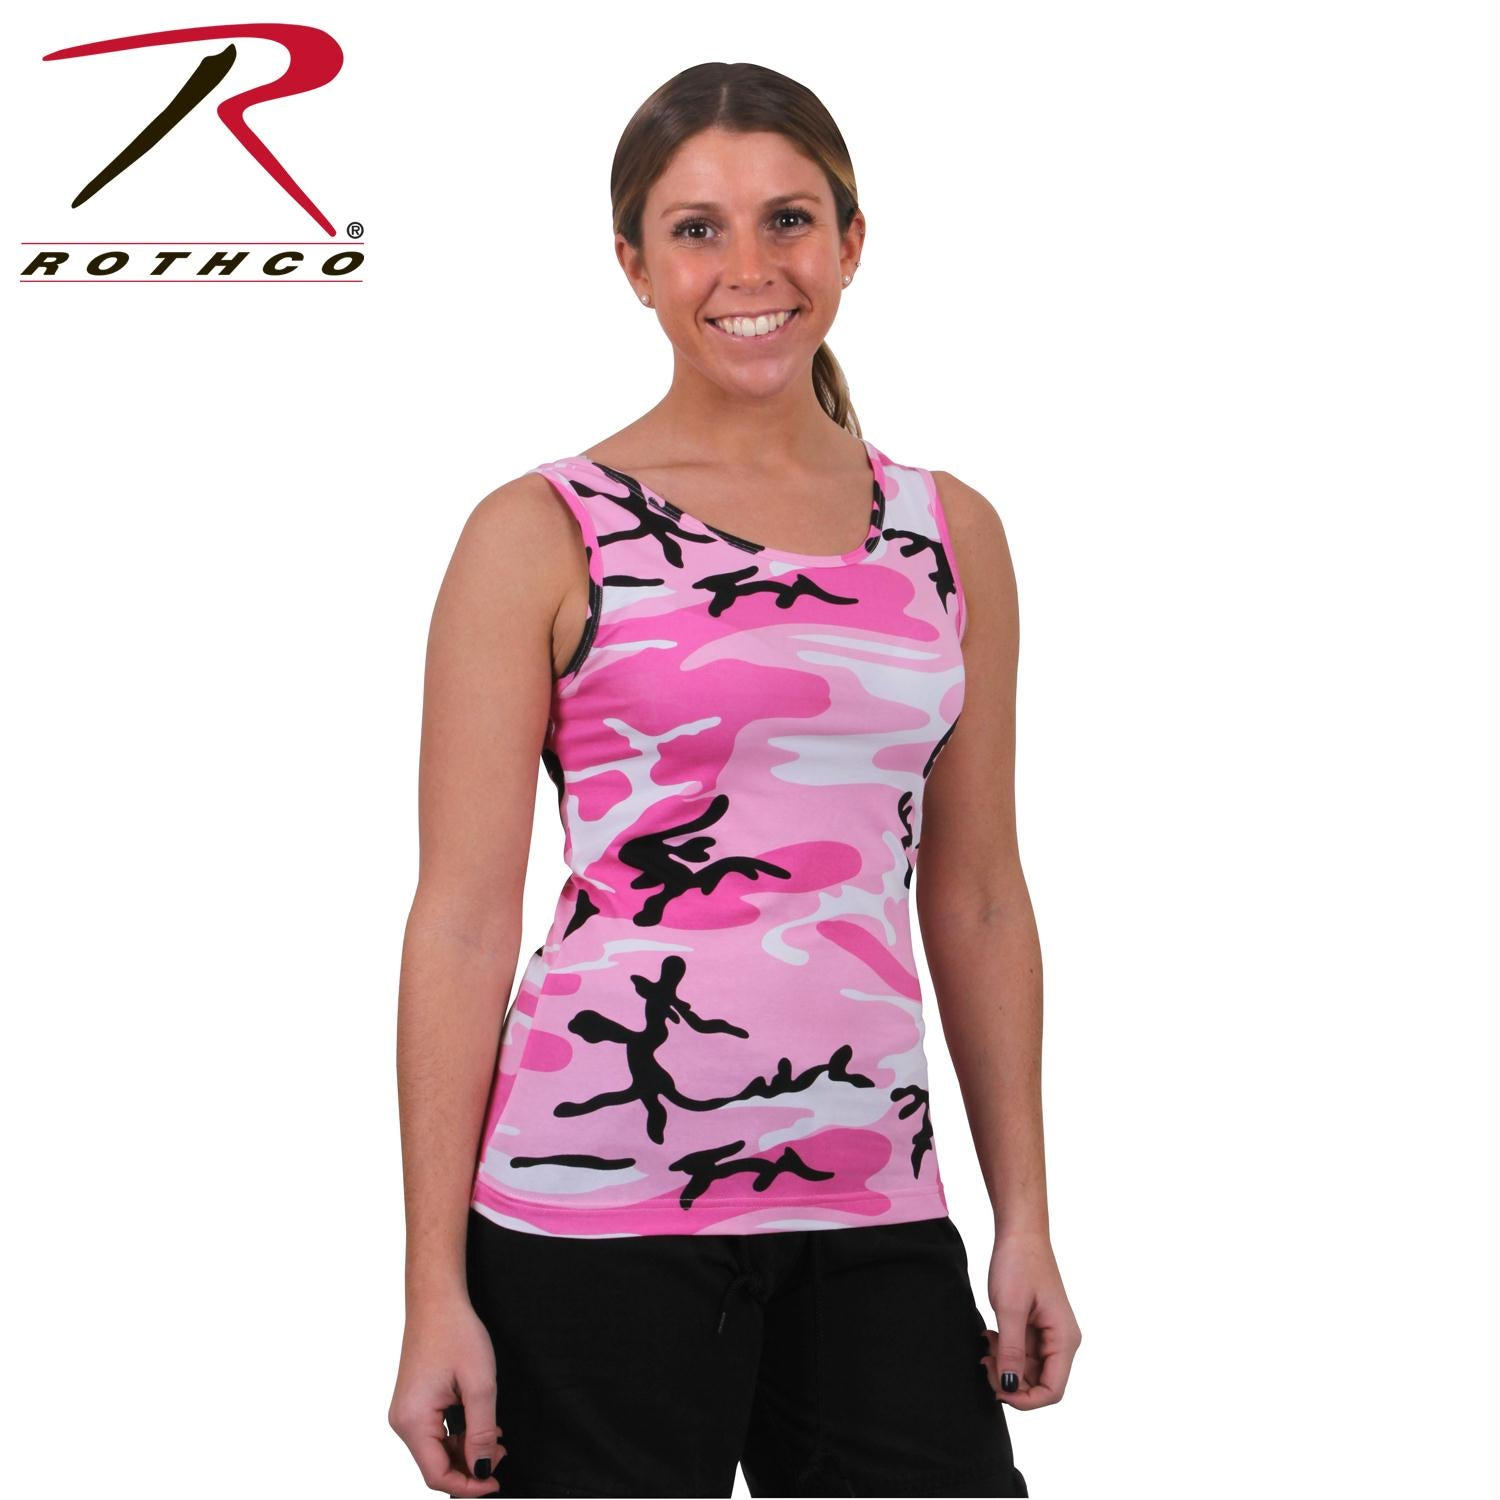 Rothco Womens Camo Stretch Tank Top - Pink Camo / XL